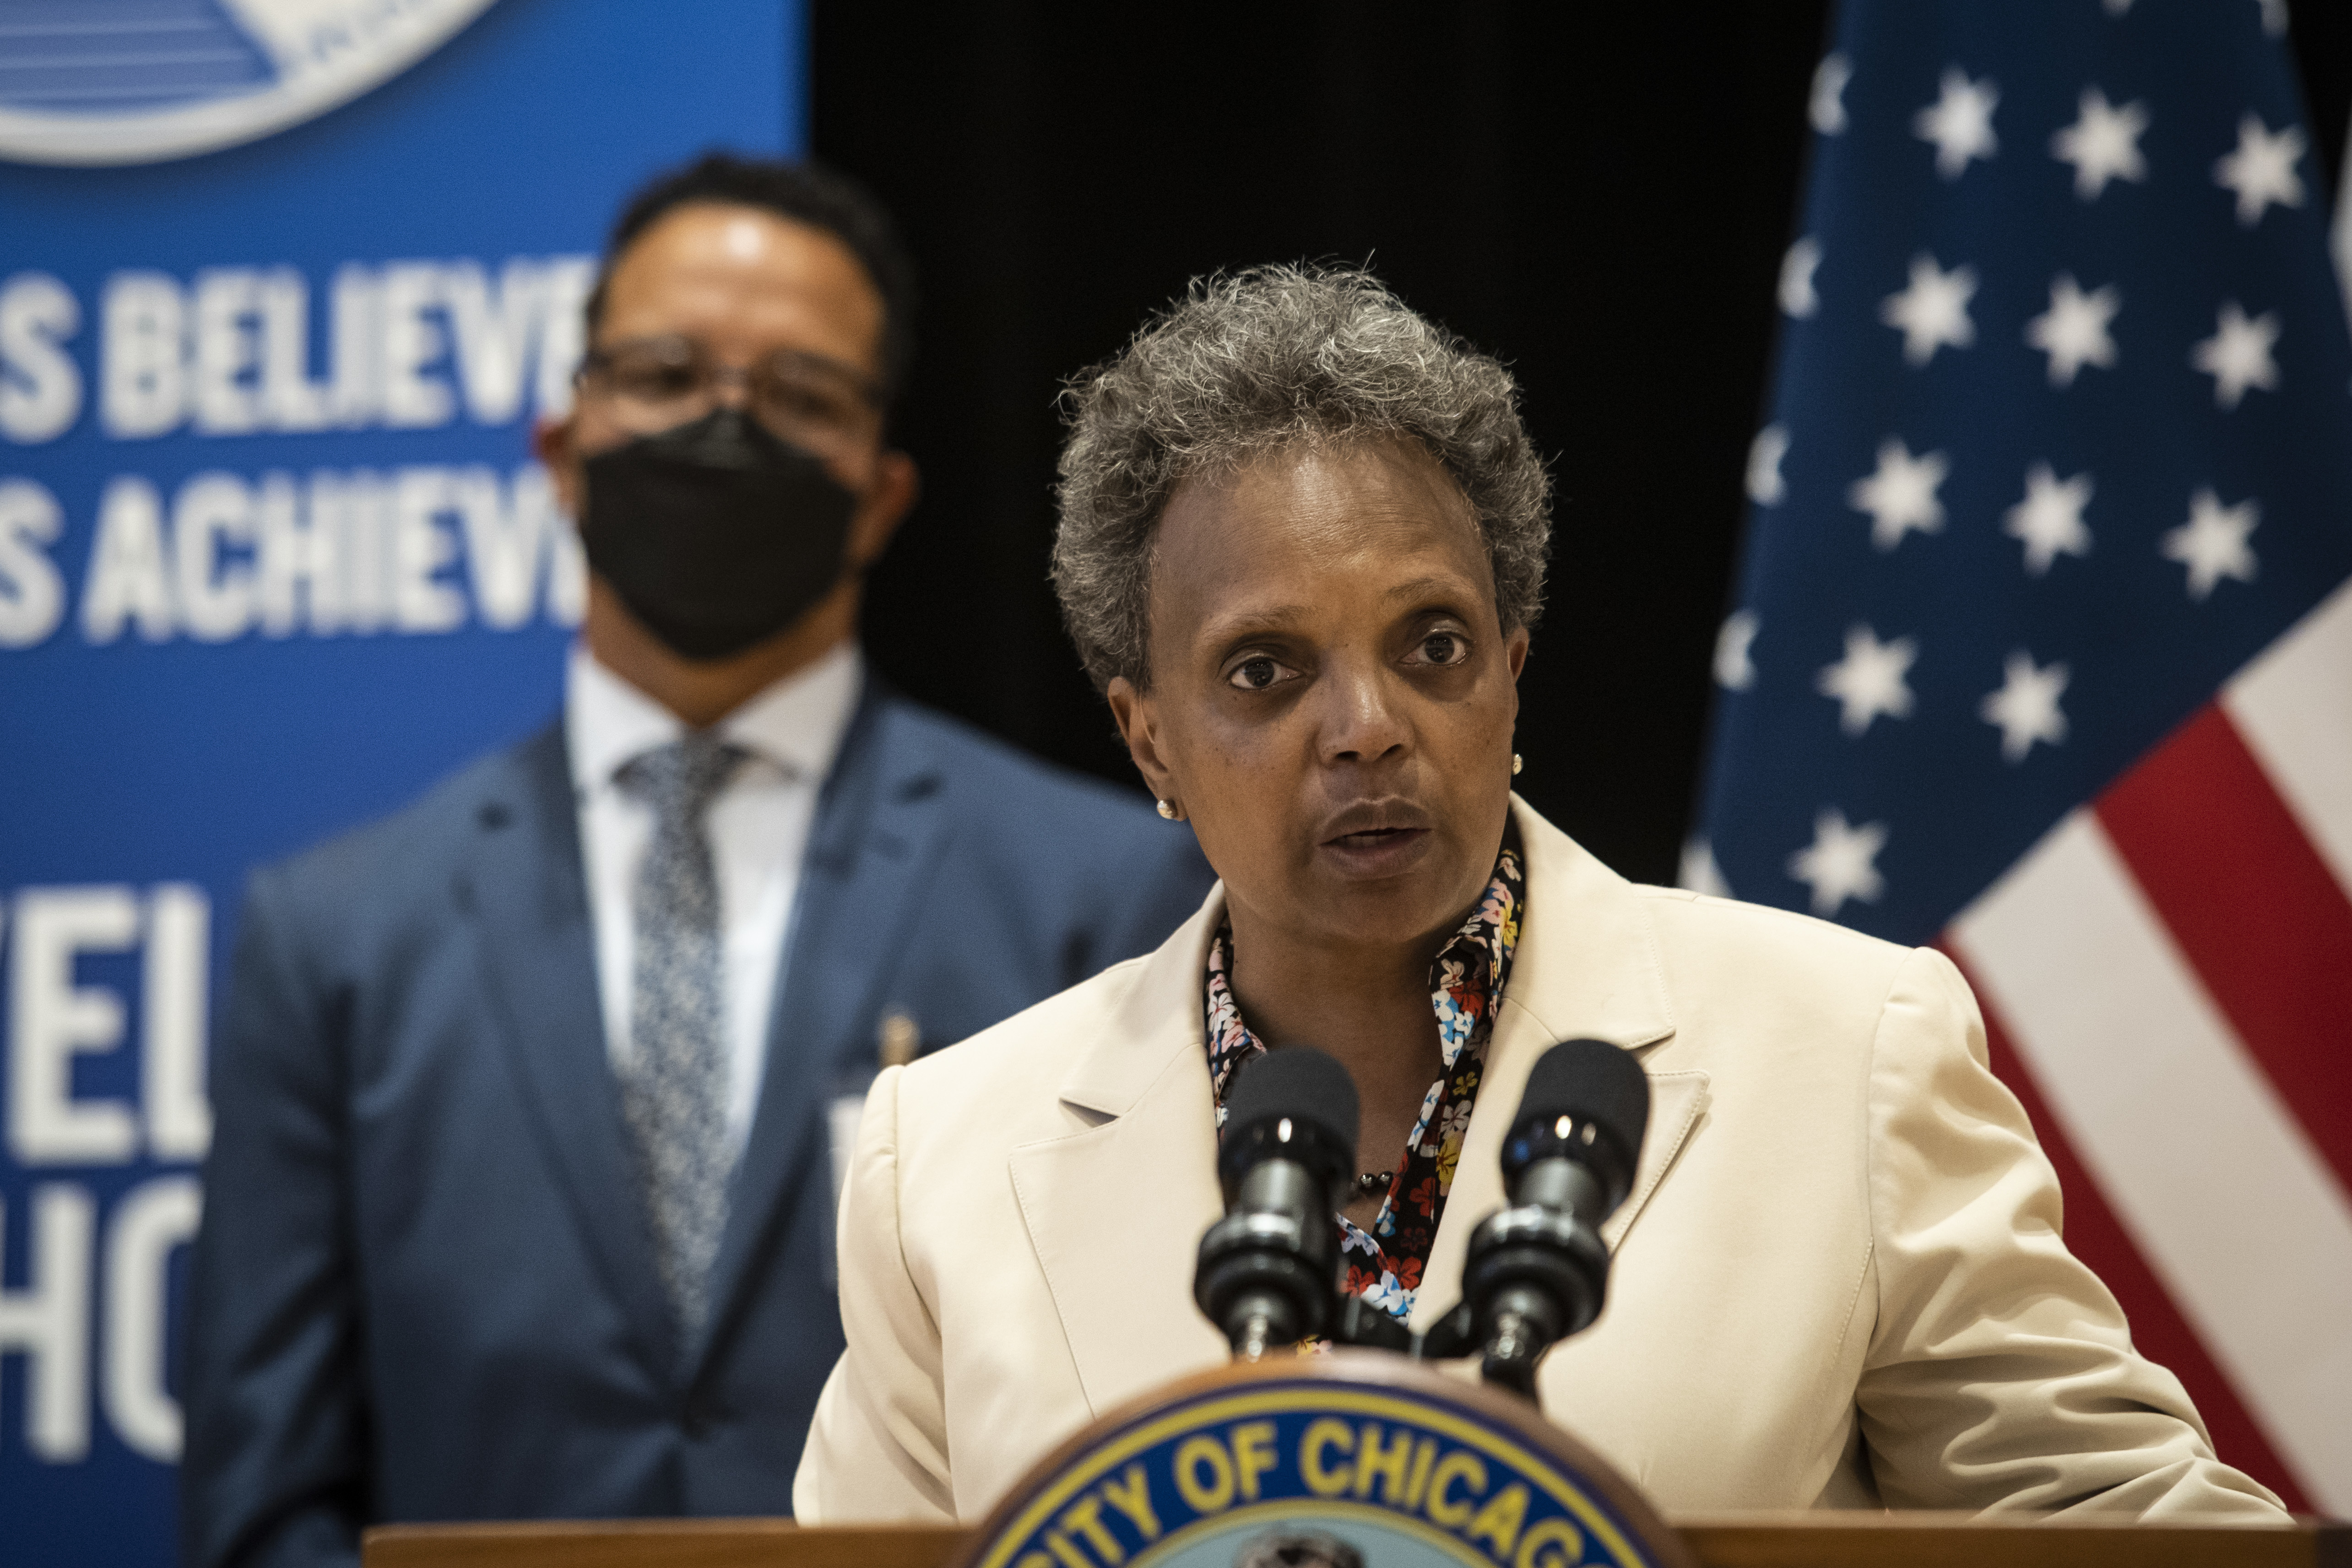 Chicago Mayor Lori Lightfoot, shown on Monday introducing former Elgin schools superintendent José Torres as the interim CEO for Chicago Public Schools,is continuing to make her case against a bill being considered in Springfield that eventually put in place a fully-elected 21-member board to run the state's largest school system.